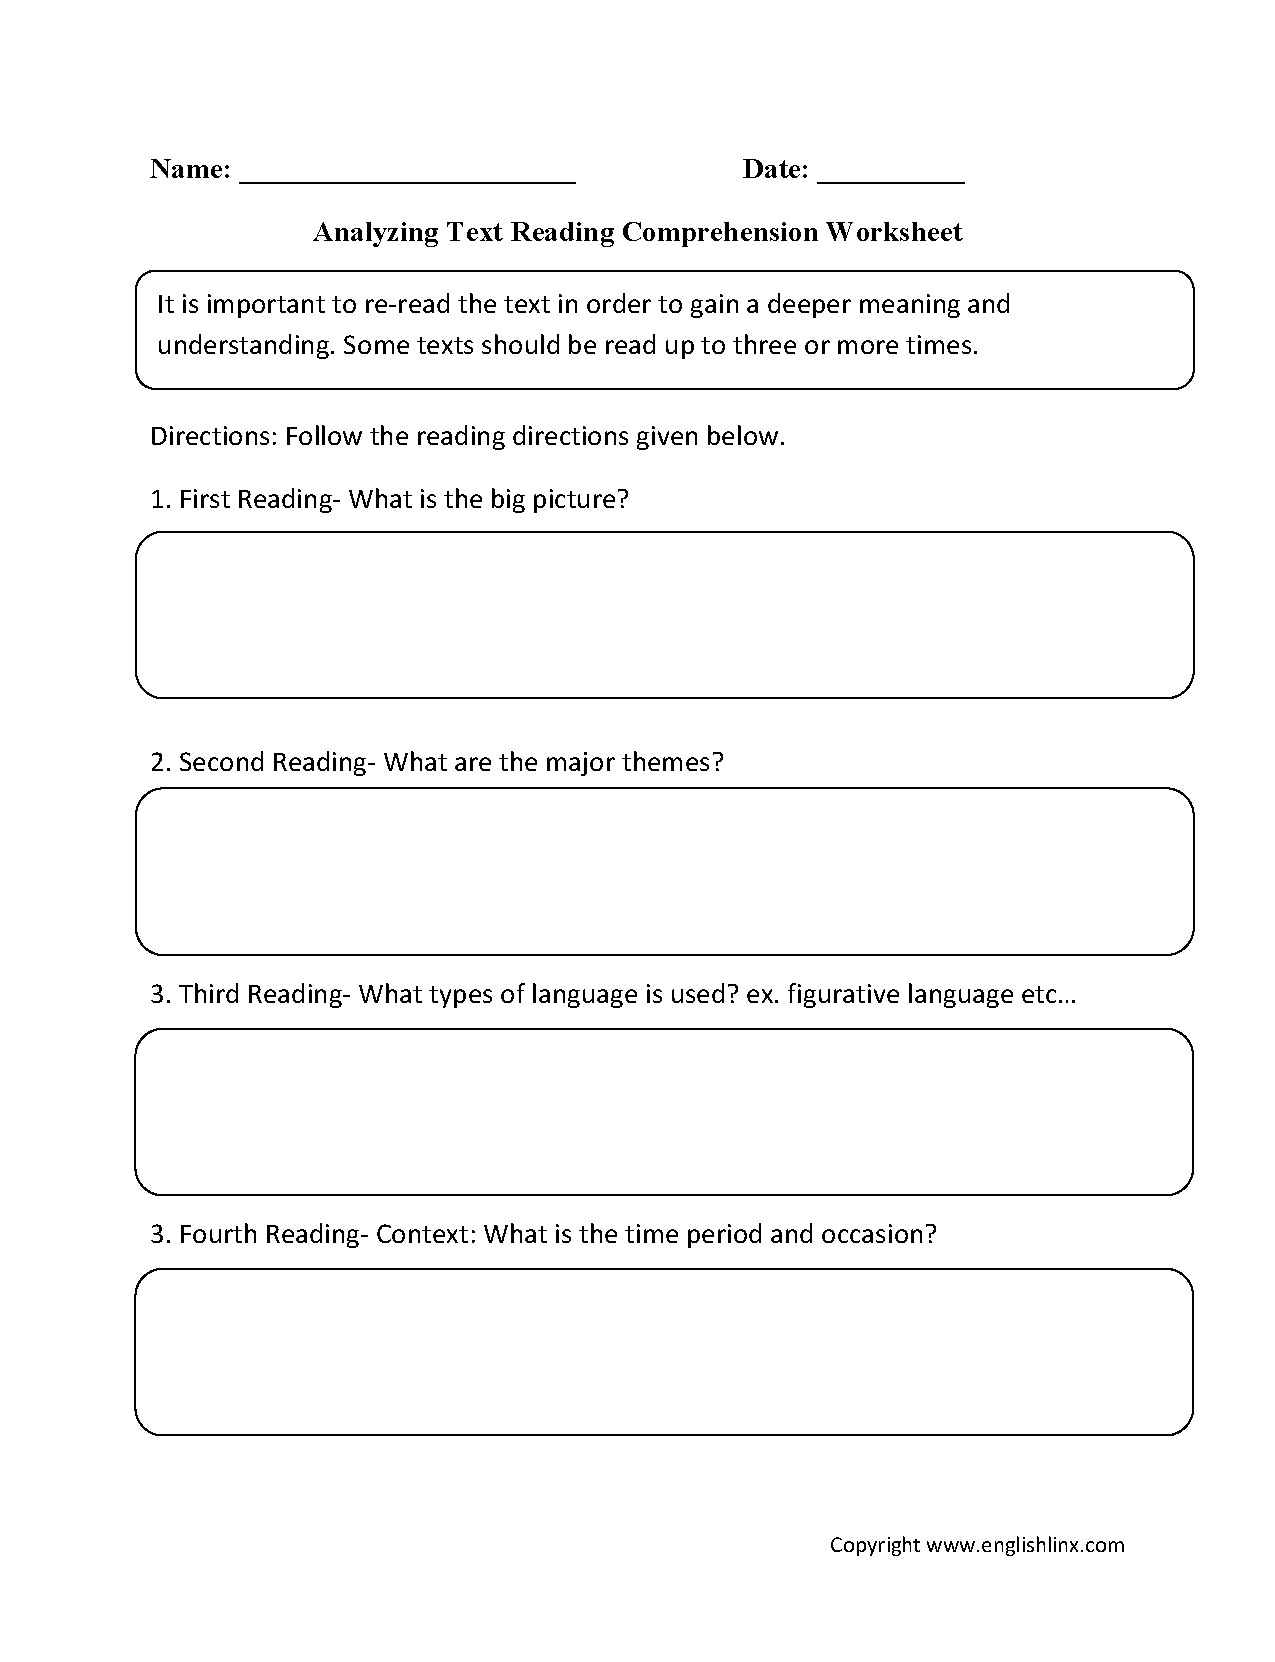 Worksheets Reading Comprehension Worksheets For Adults englishlinx com reading comprehension worksheets worksheets